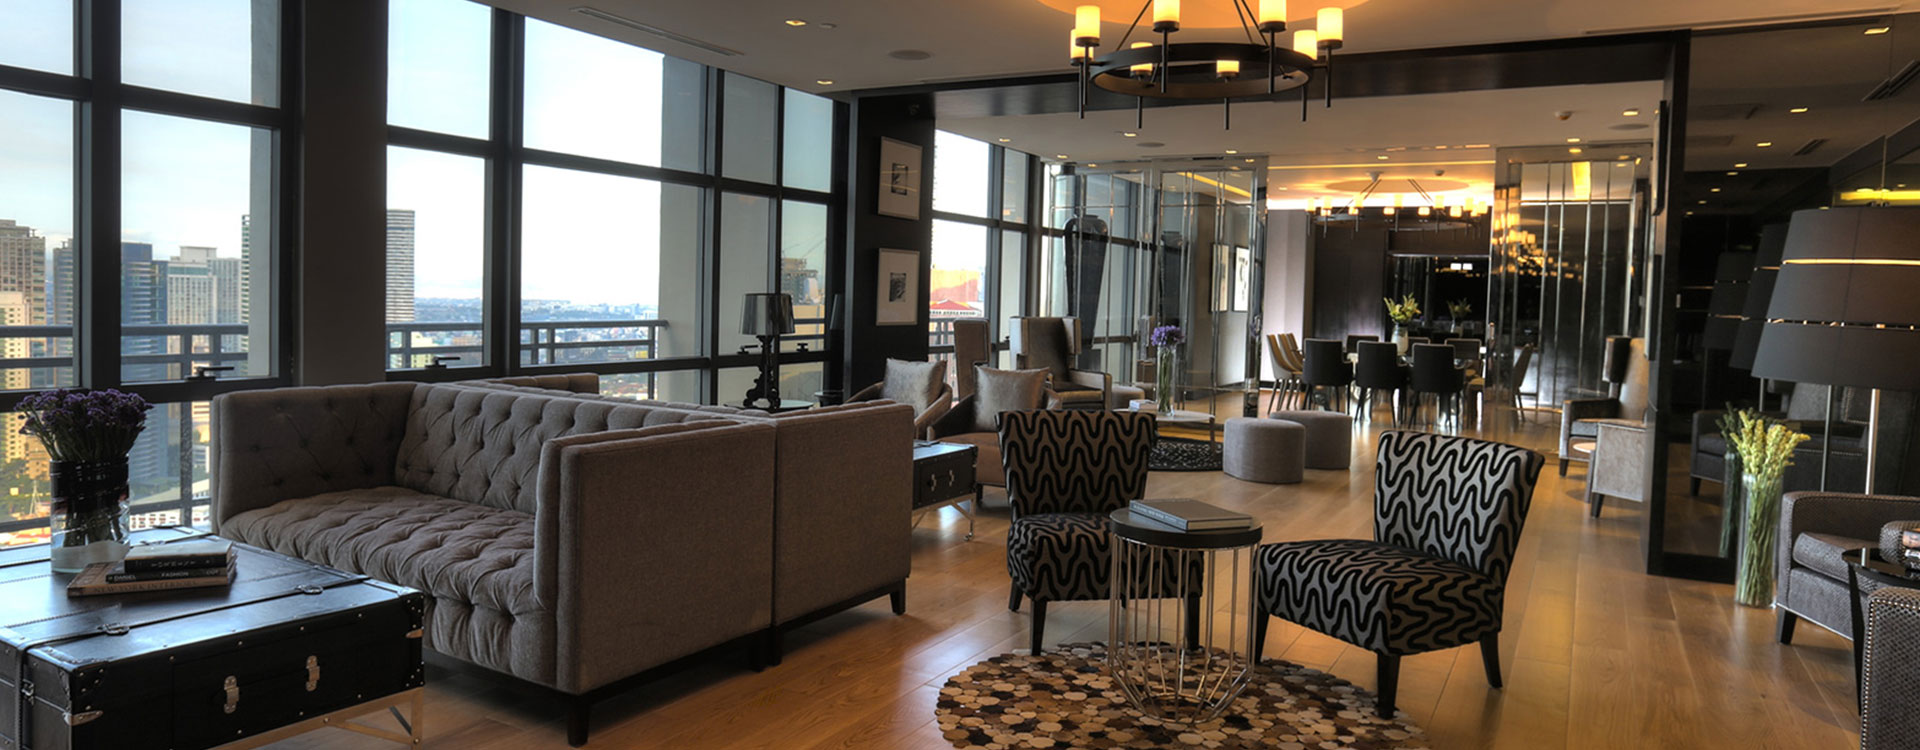 real estate philippines gramercy residences study room